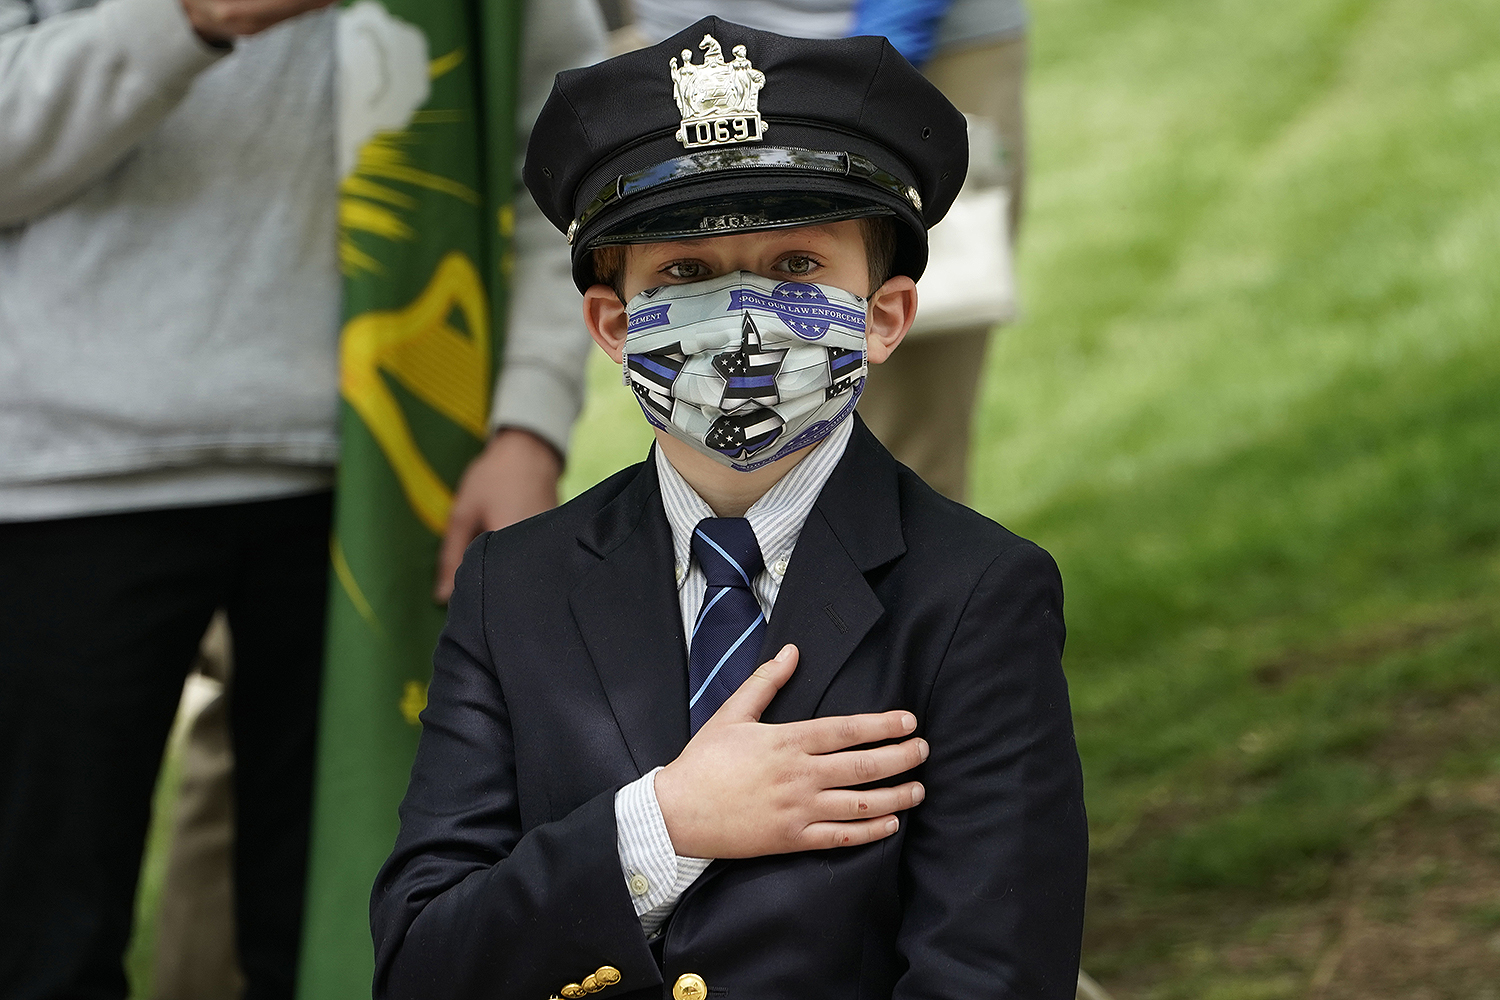 Gavin, 10, looks on during the funeral service of his father, Charles Rob Roberts, a police officer who died of the coronavirus, in Glen Ridge, New Jersey, on May 14. TIMOTHY A. CLARY/AFP via Getty Images